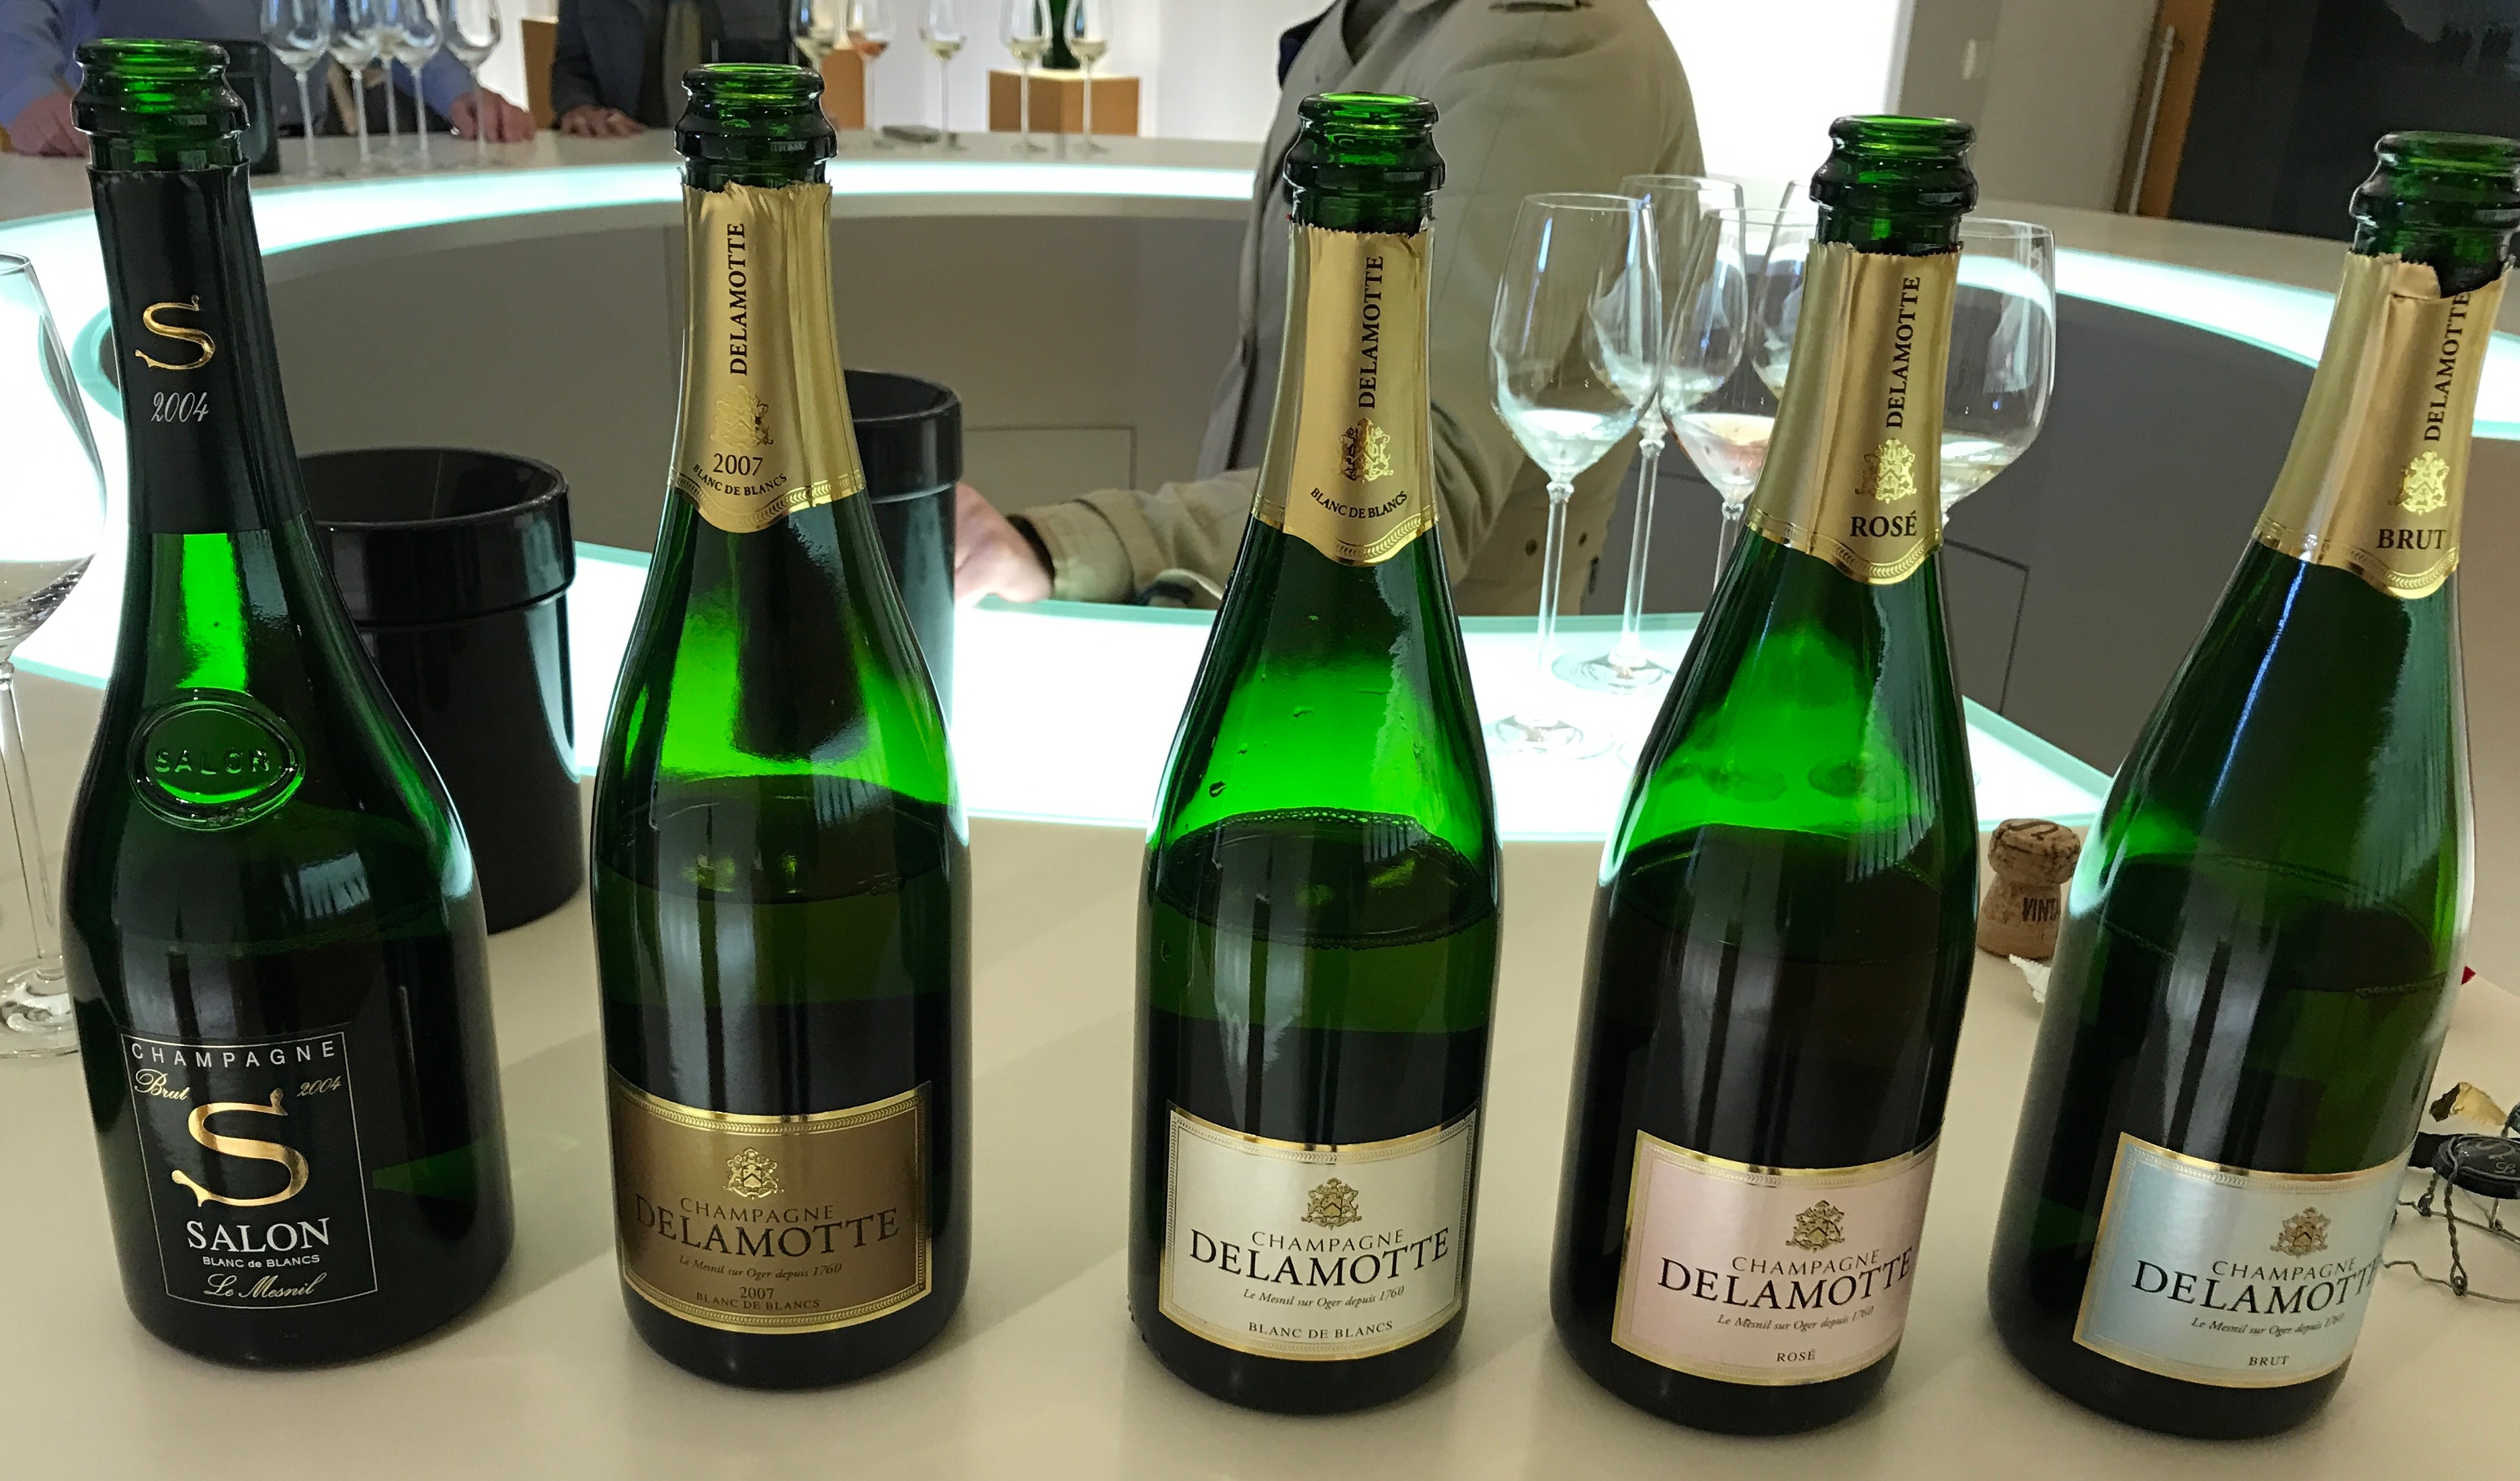 Salon Champagne Life In The Bubble Champagne Blow Out Michel Thibault Wine